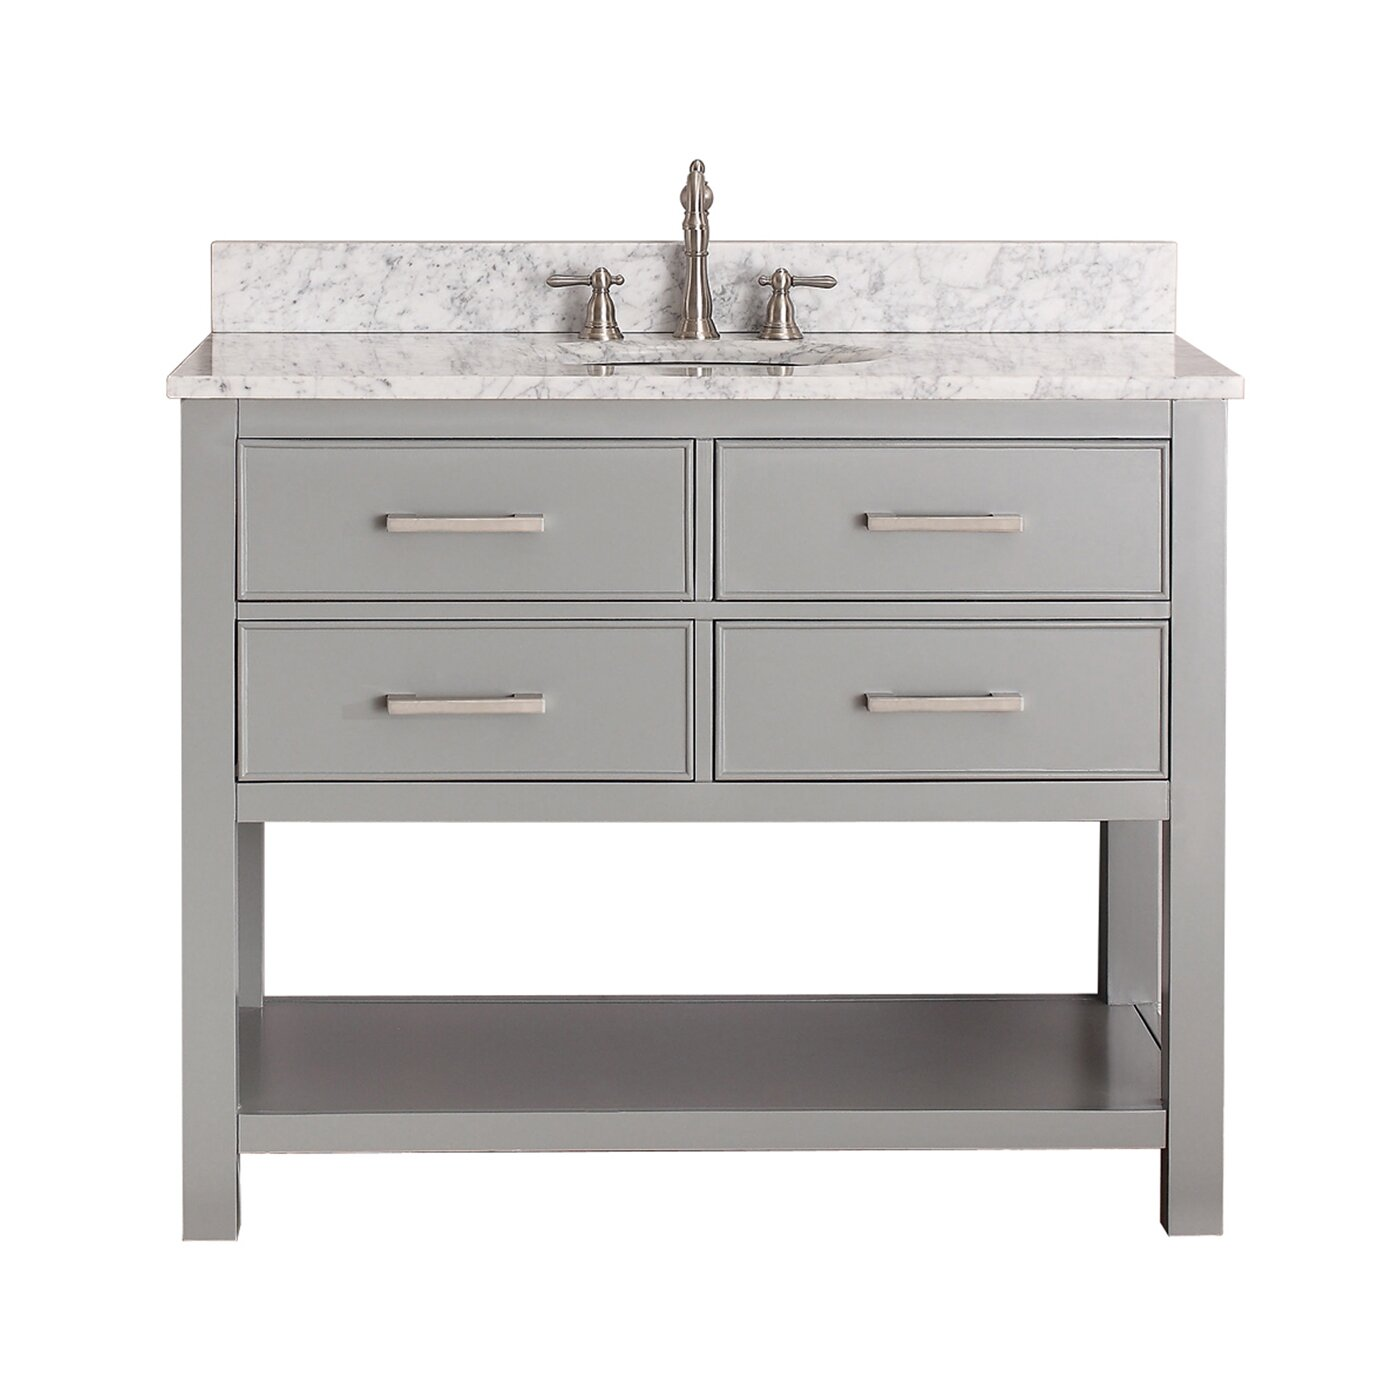 Lowes Bathroom Vanities in Stock | Vanities on Sale at Lowes | Vanity Lowes